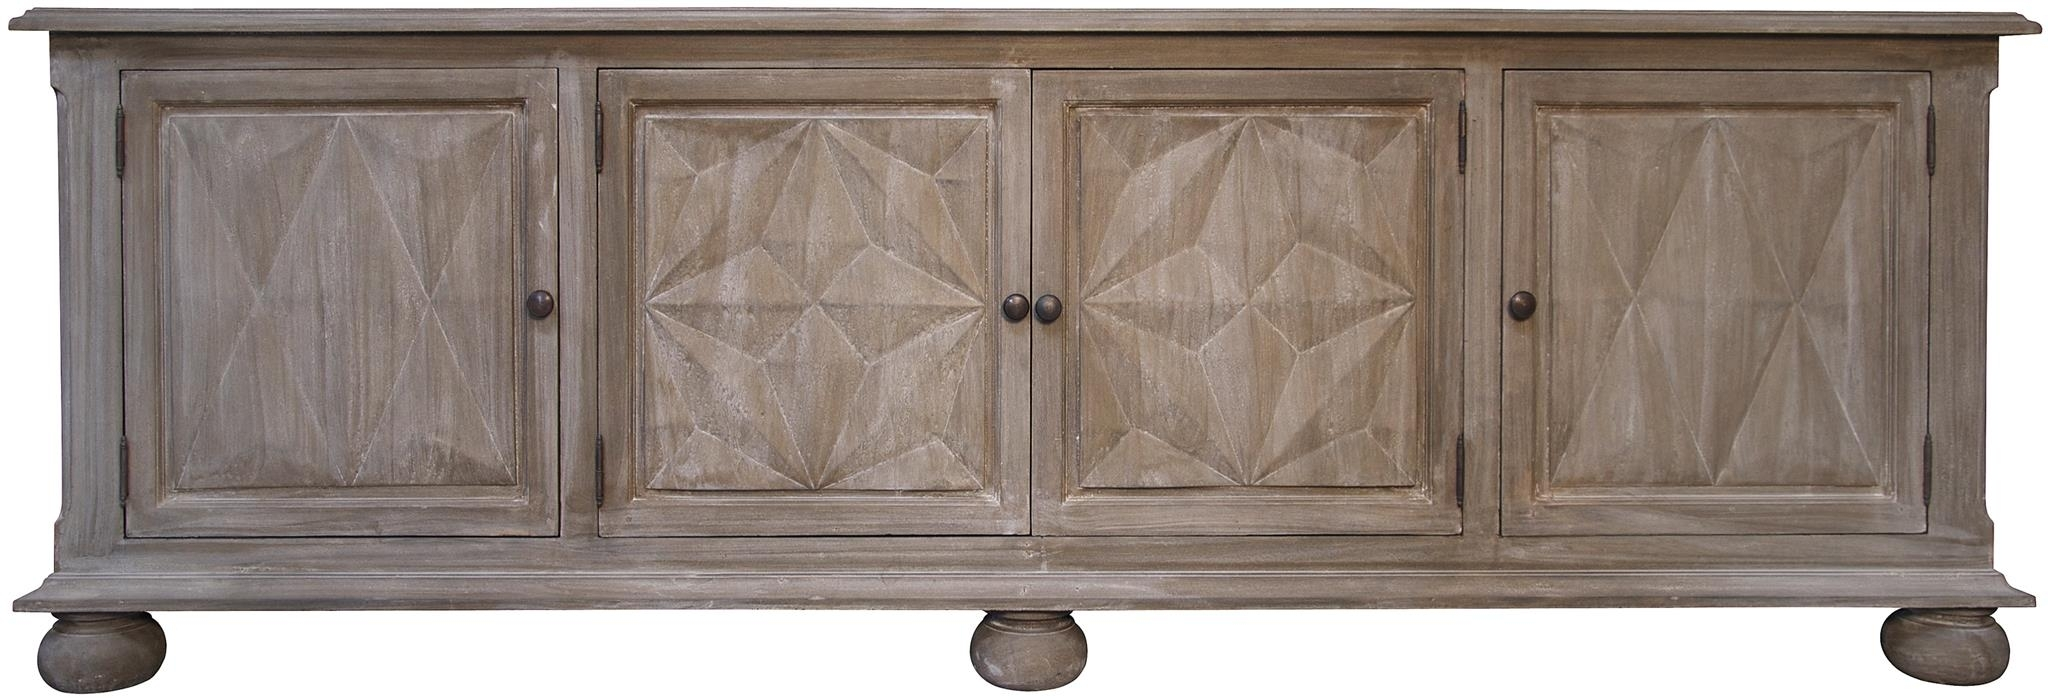 Cabinets, Consoles & Sofa Tables | Htgt Furniture inside Gunmetal Perforated Brass Sideboards (Image 8 of 30)